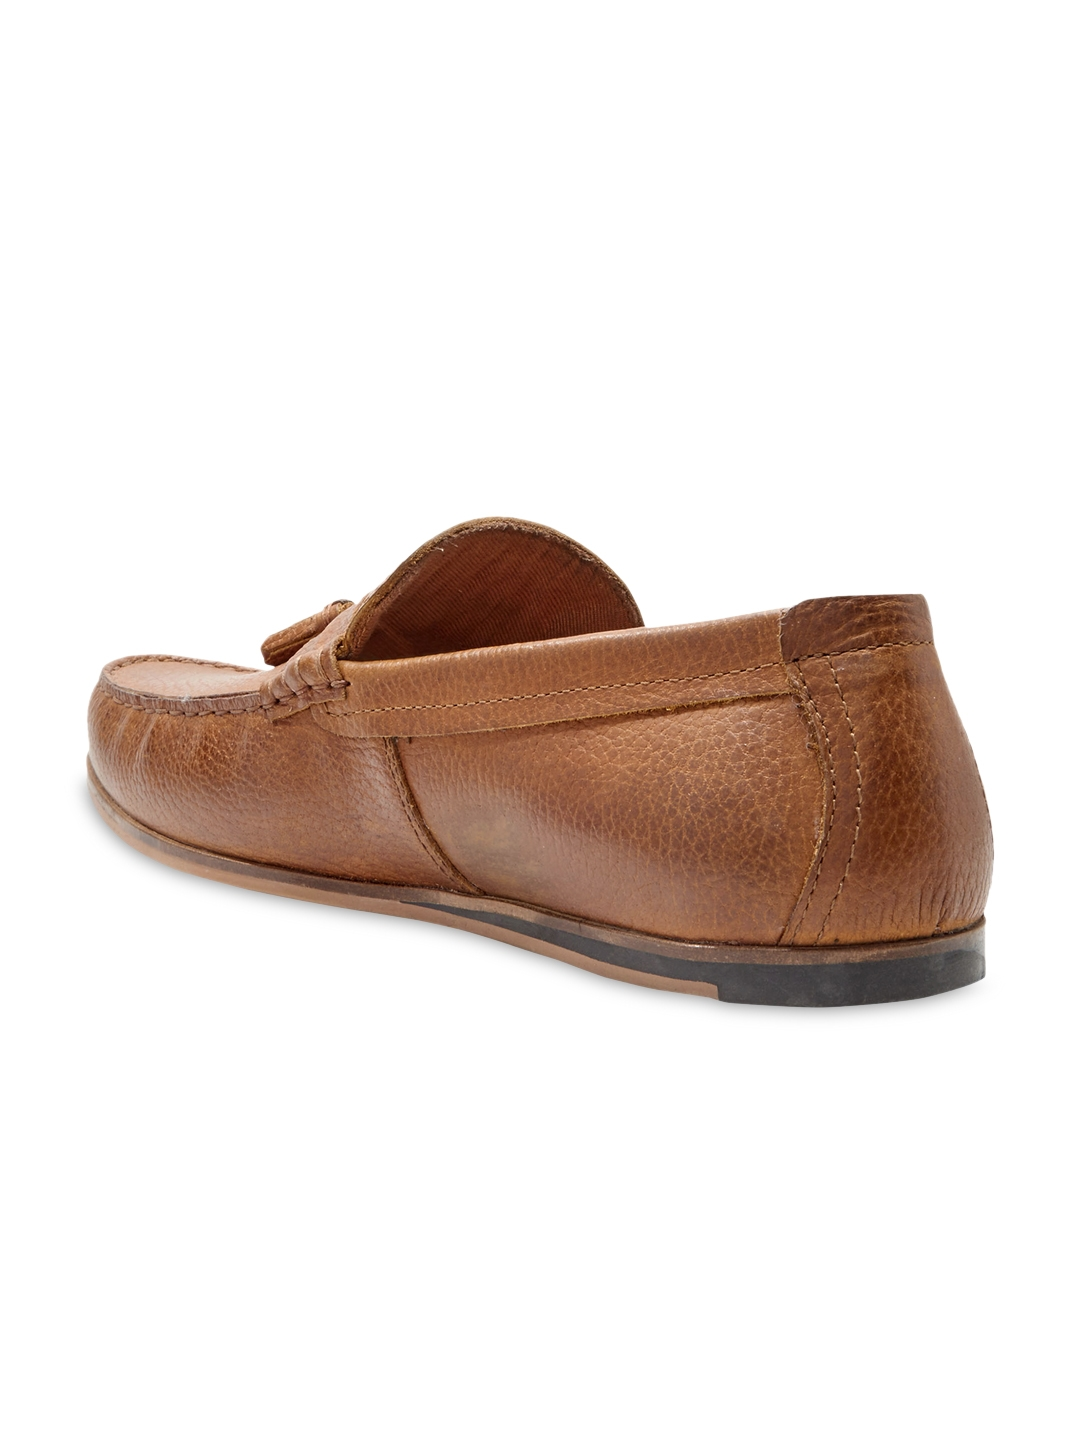 a769894ddb Buy Next Men Tan Leather Tassel Loafers - Casual Shoes for Men ...